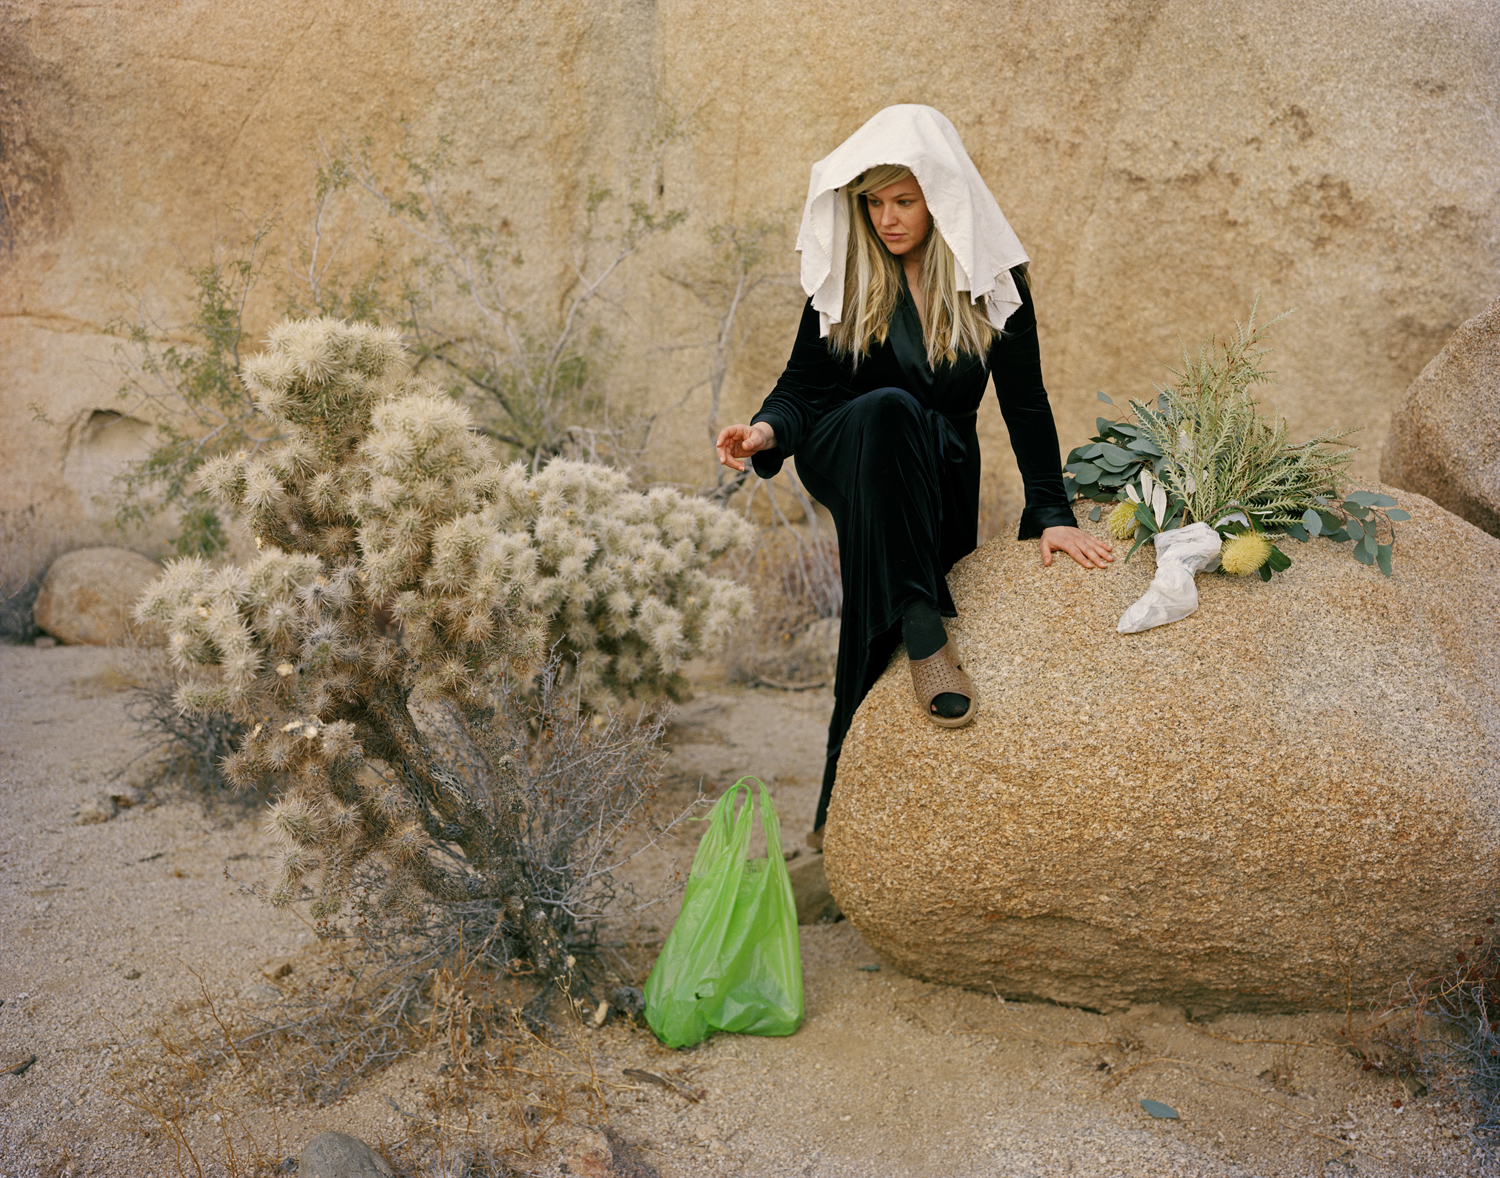 """""""Cholla Bag with Toe Hole Stocking, Reaching,"""" 2018. Archival Inkjet print on Canson Baryta. 32"""" x 40""""  Collection of the Samuel Dorsky Museum of Art, in gratitude to the Hudson Valley Artist Purchase Award 2018."""